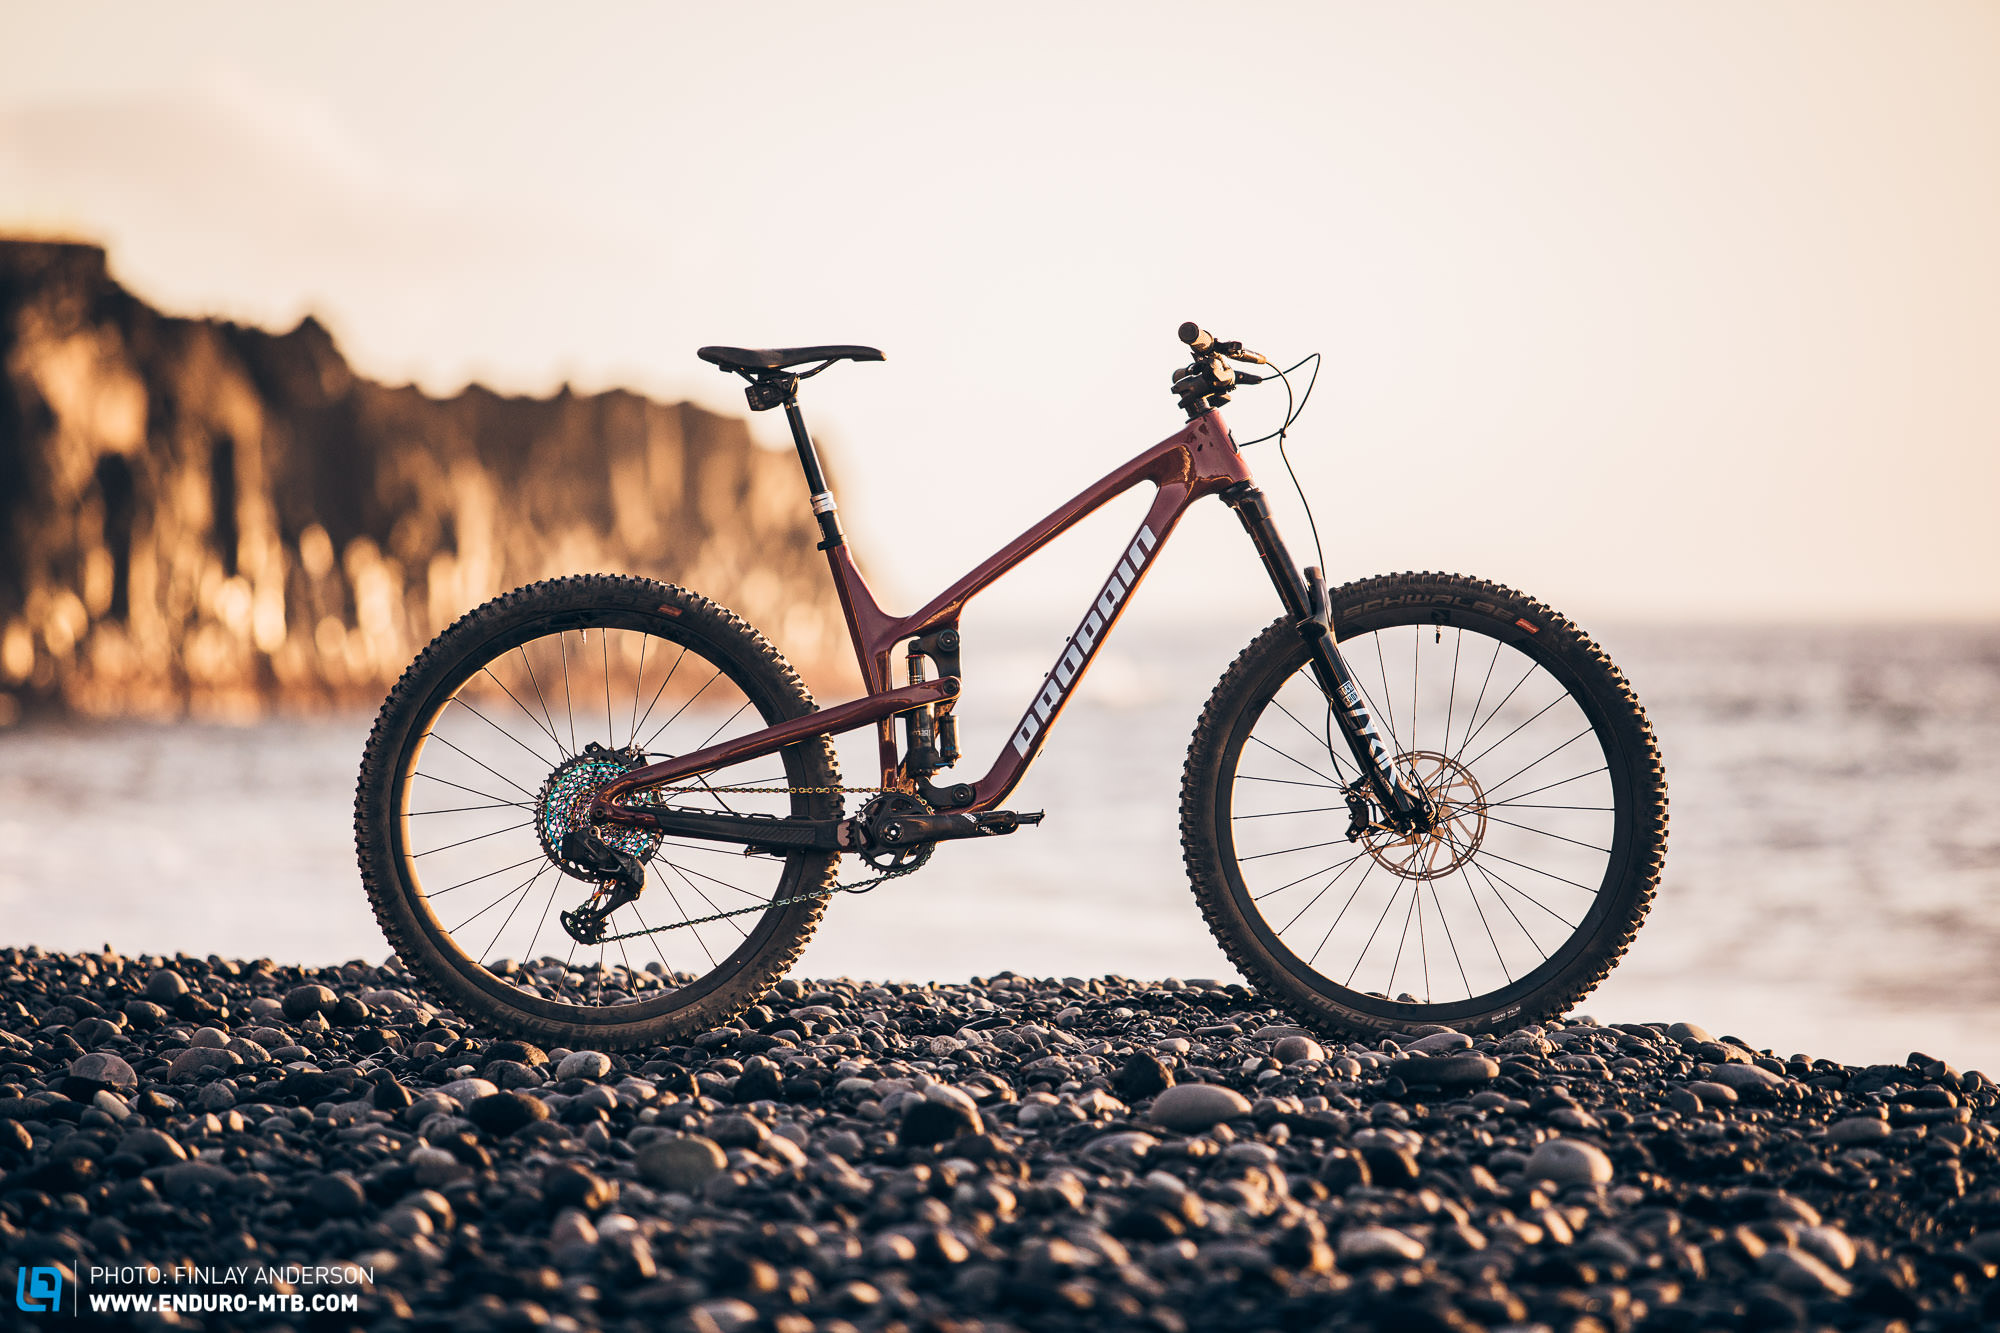 First Ride Review: Propain Tyee 29 - the reincarnation of the fun all-rounder! | ENDURO Mountainbike Magazine